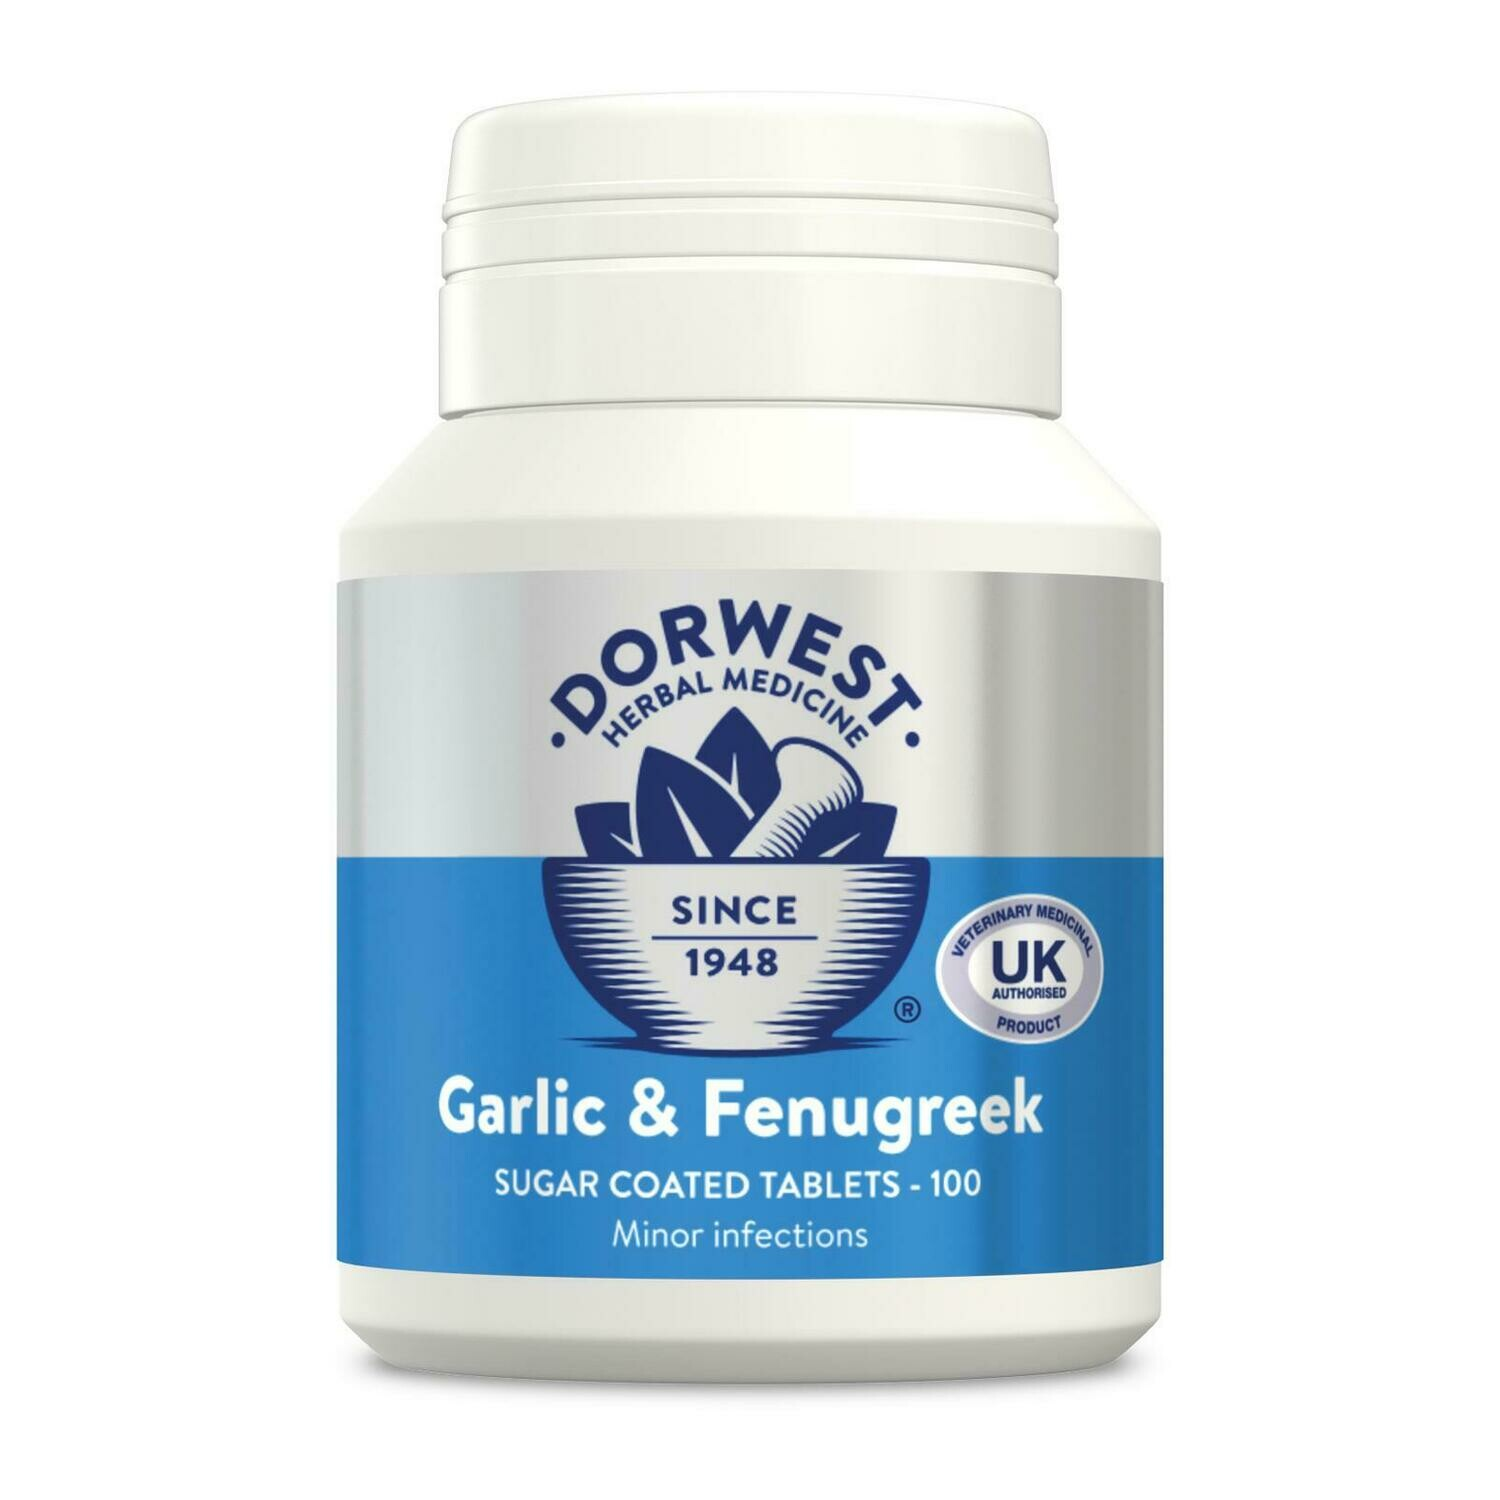 Dorwest Herbs Garlic & Fenugreek Tablets For Dogs And Cats (100)